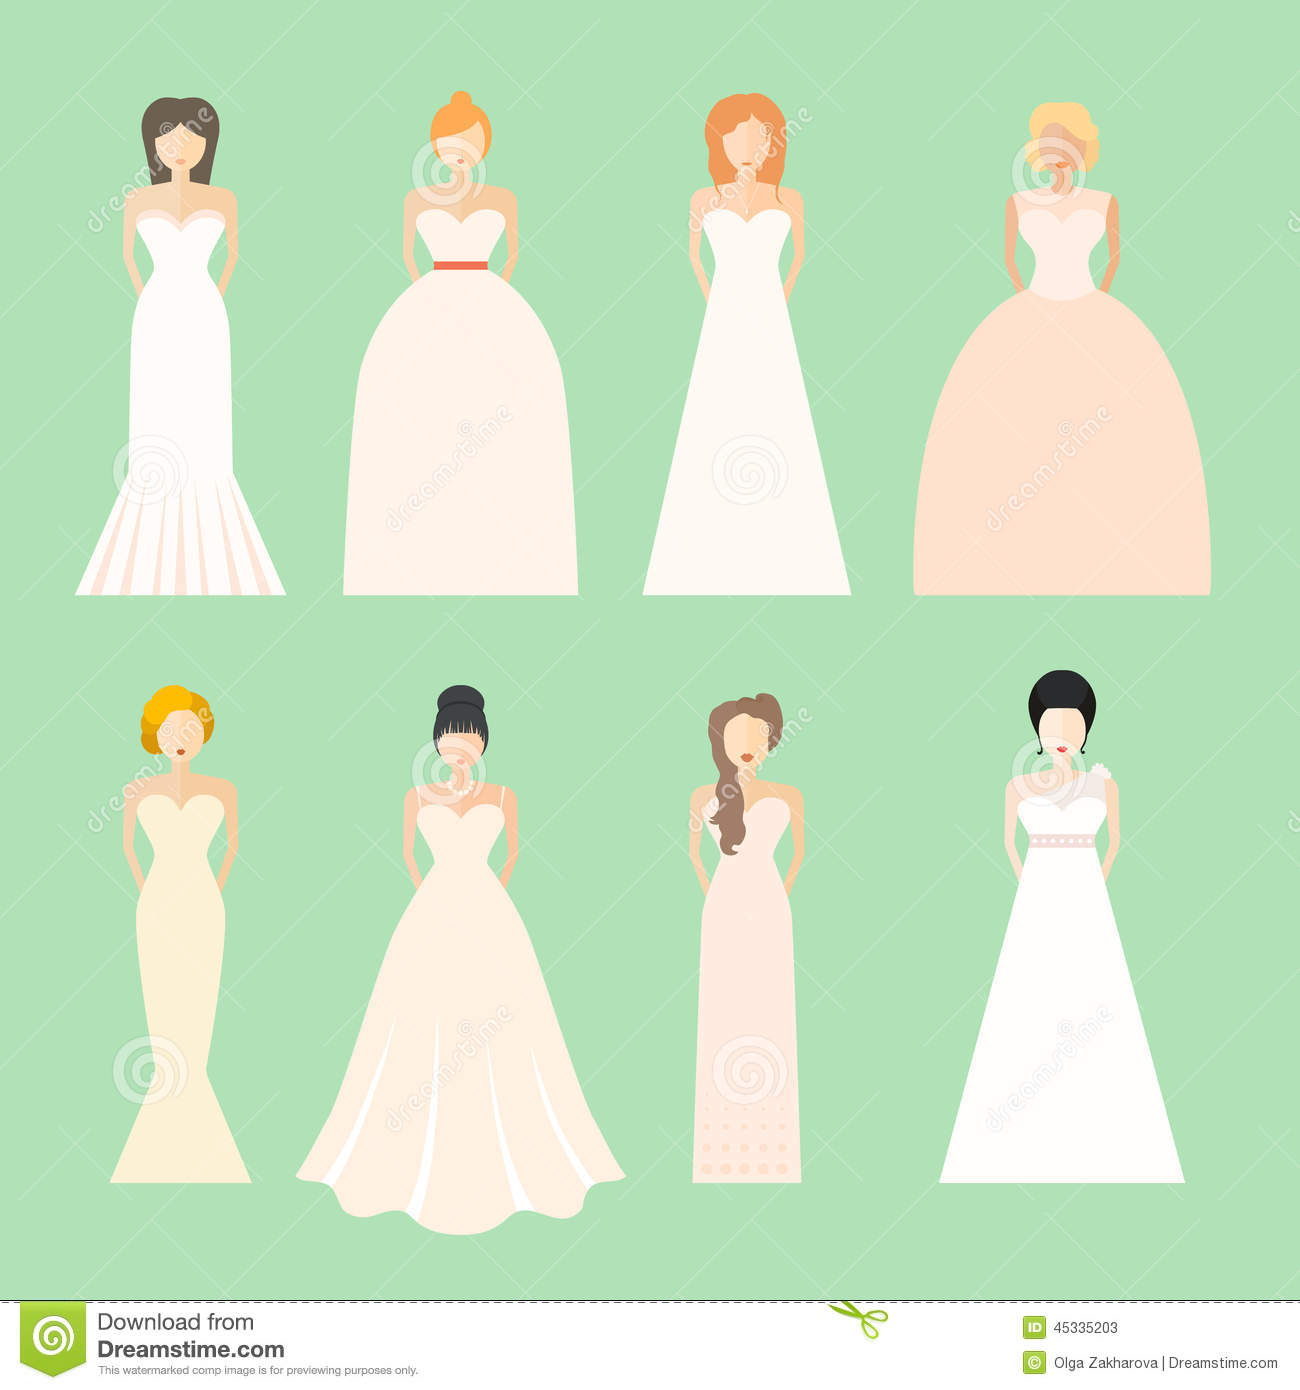 different styles of wedding dresses made in modern flat vector style